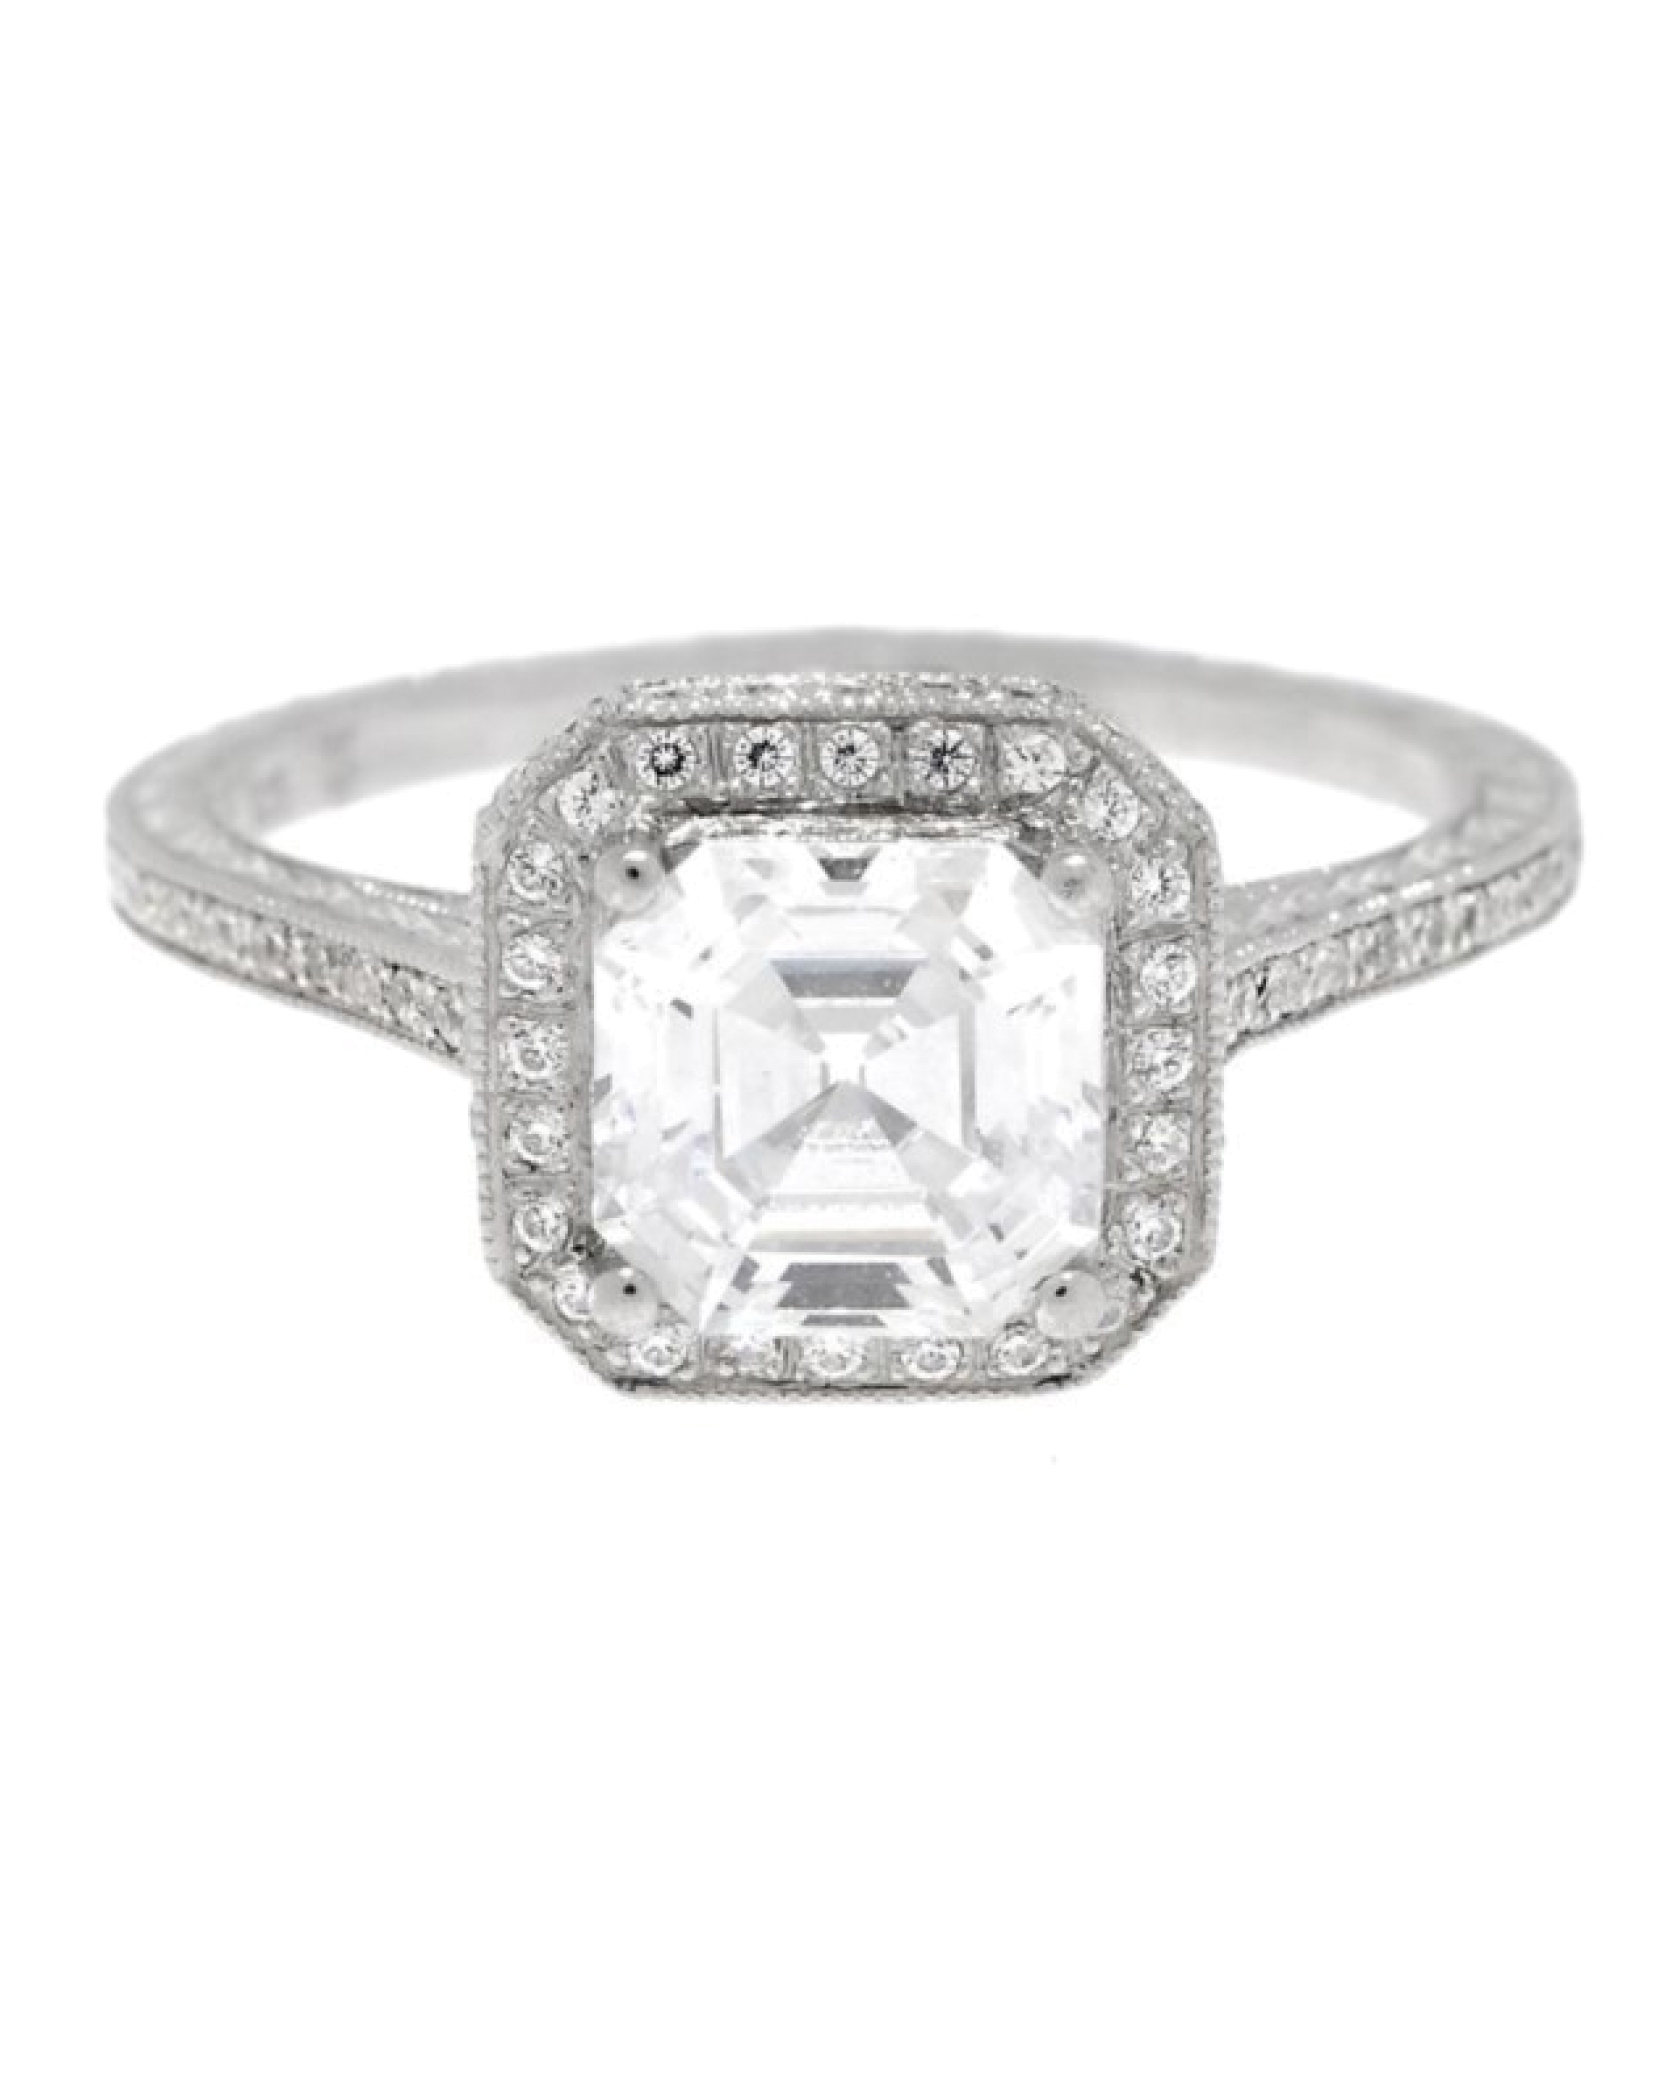 Asscher Cut Diamond Engagement Rings